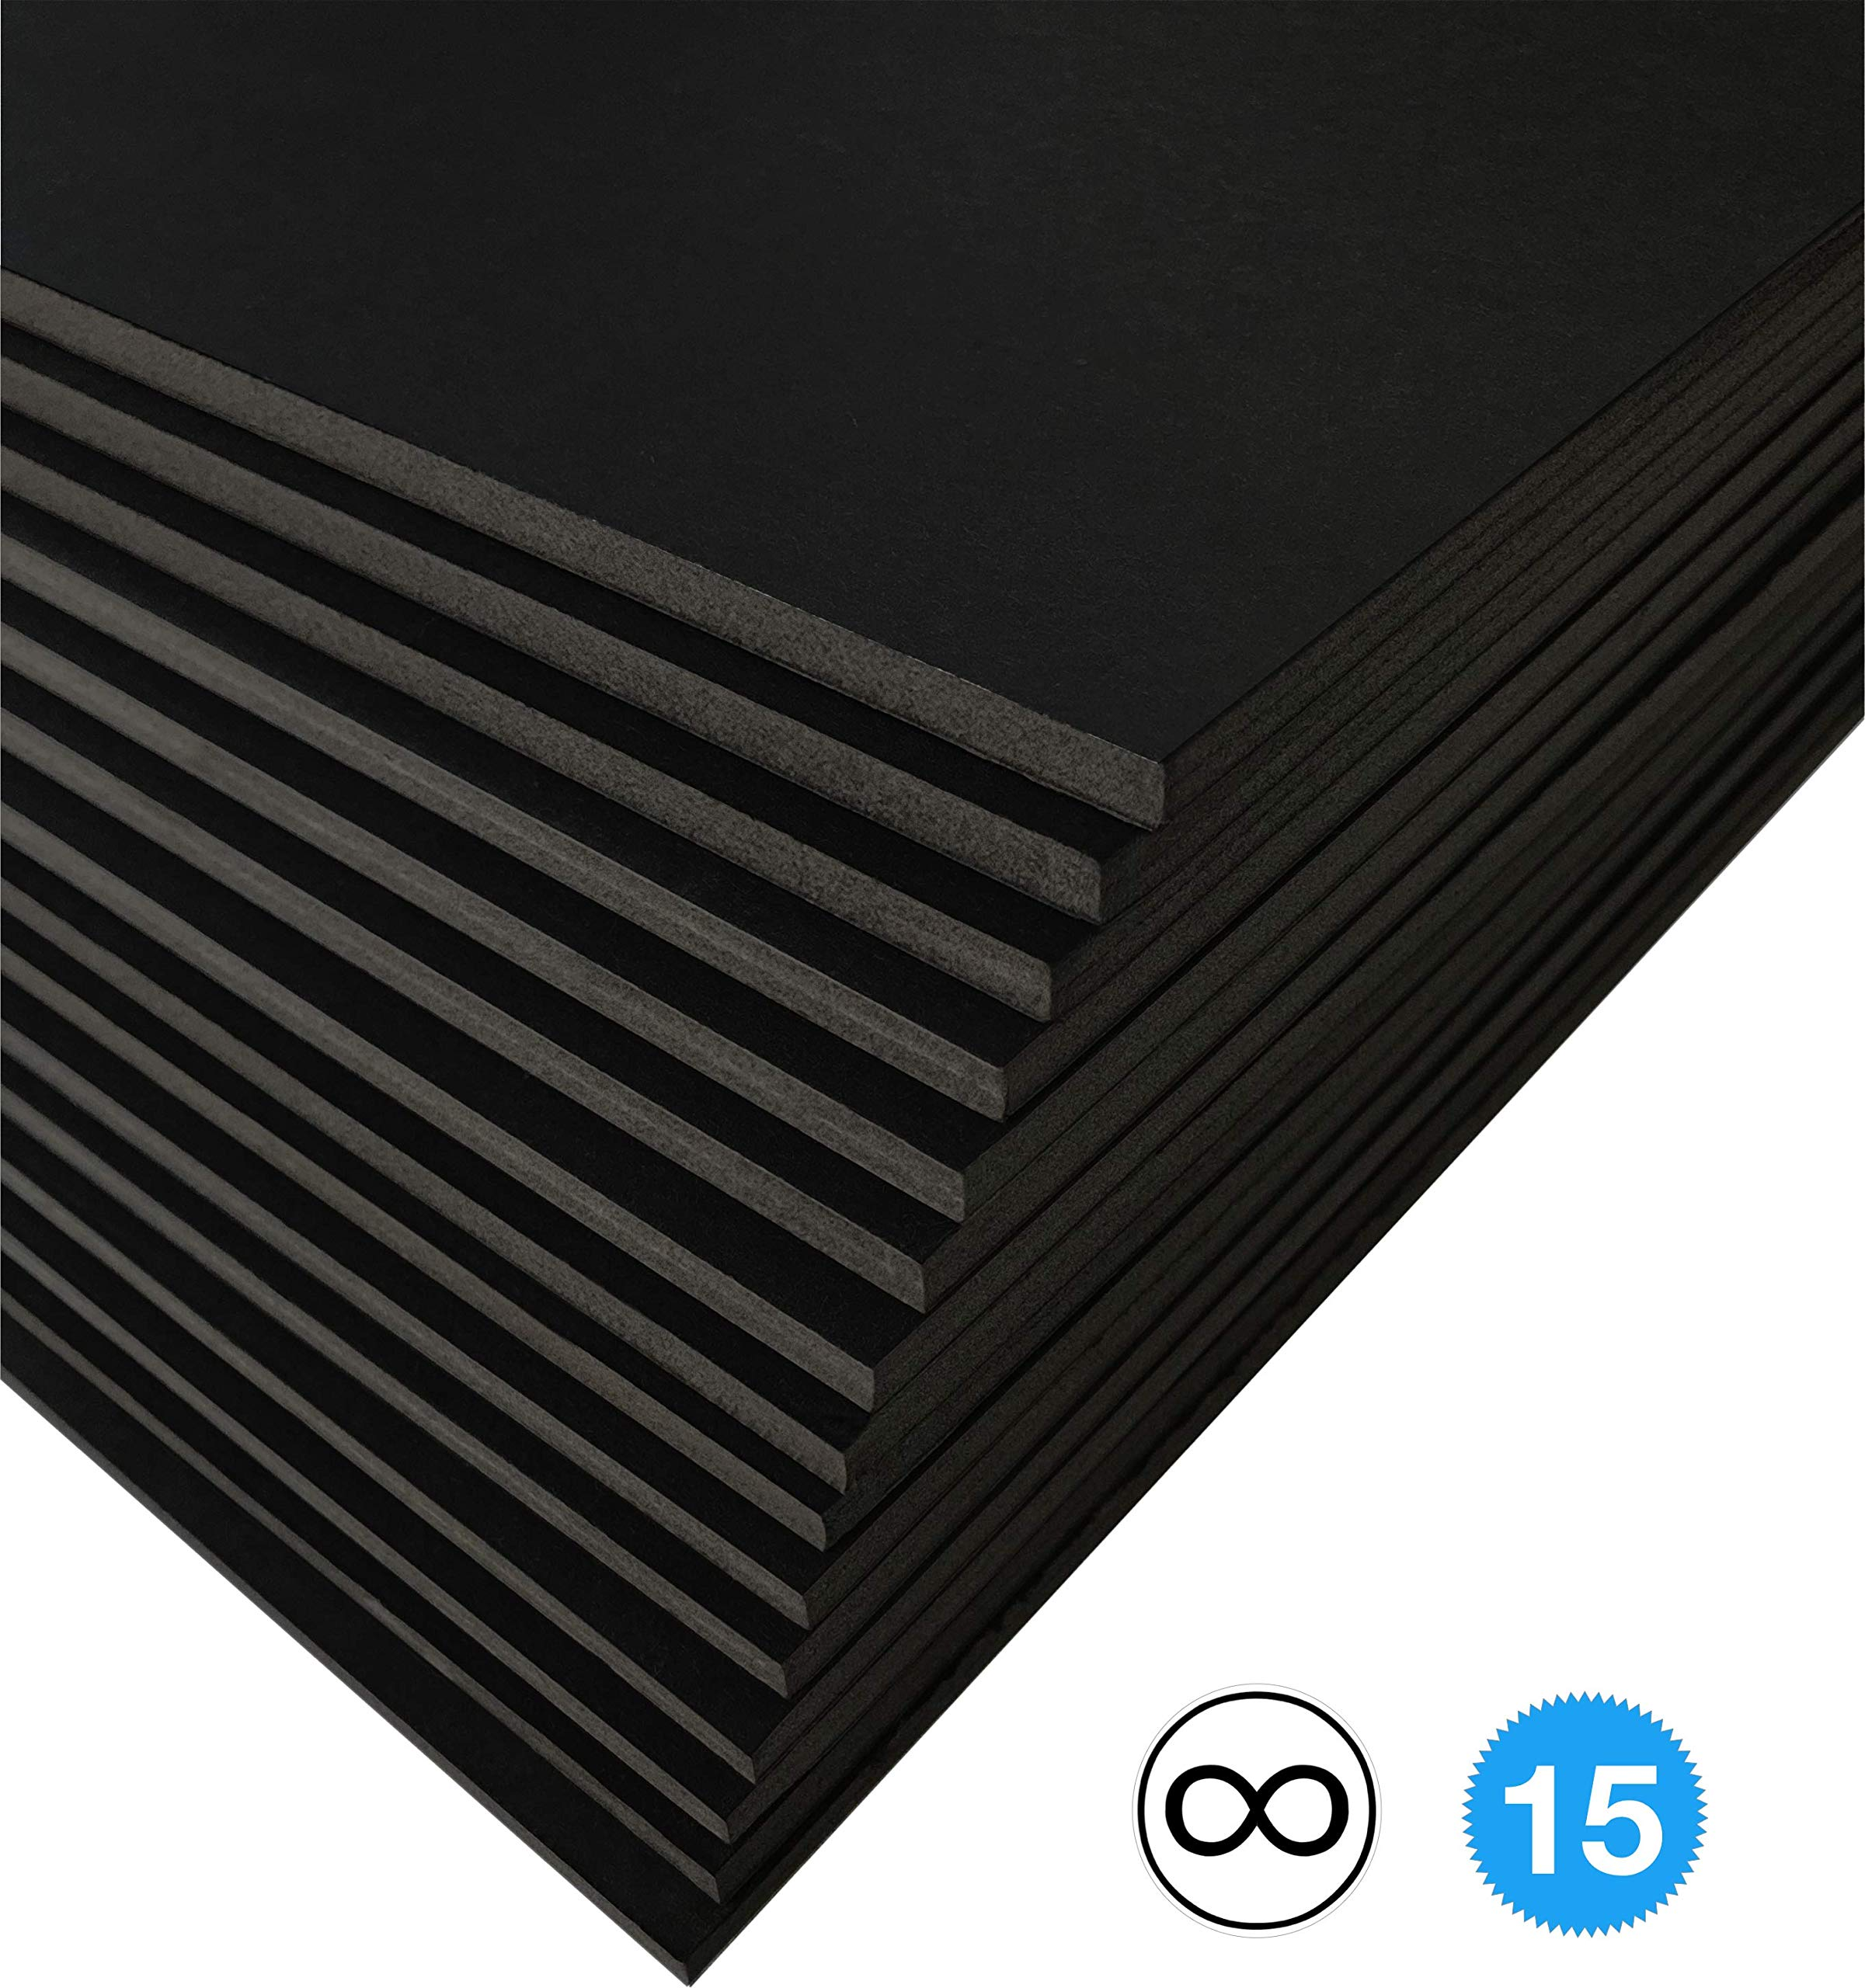 Excelsis Design, Pack of 15, Foam Boards (Acid-Free), 16x20 Inches (Many Sizes Available), 1/8 Inch Thick Mat, Black with Black Core (Foam Core Backing Boards, Double-Sided Sheets)